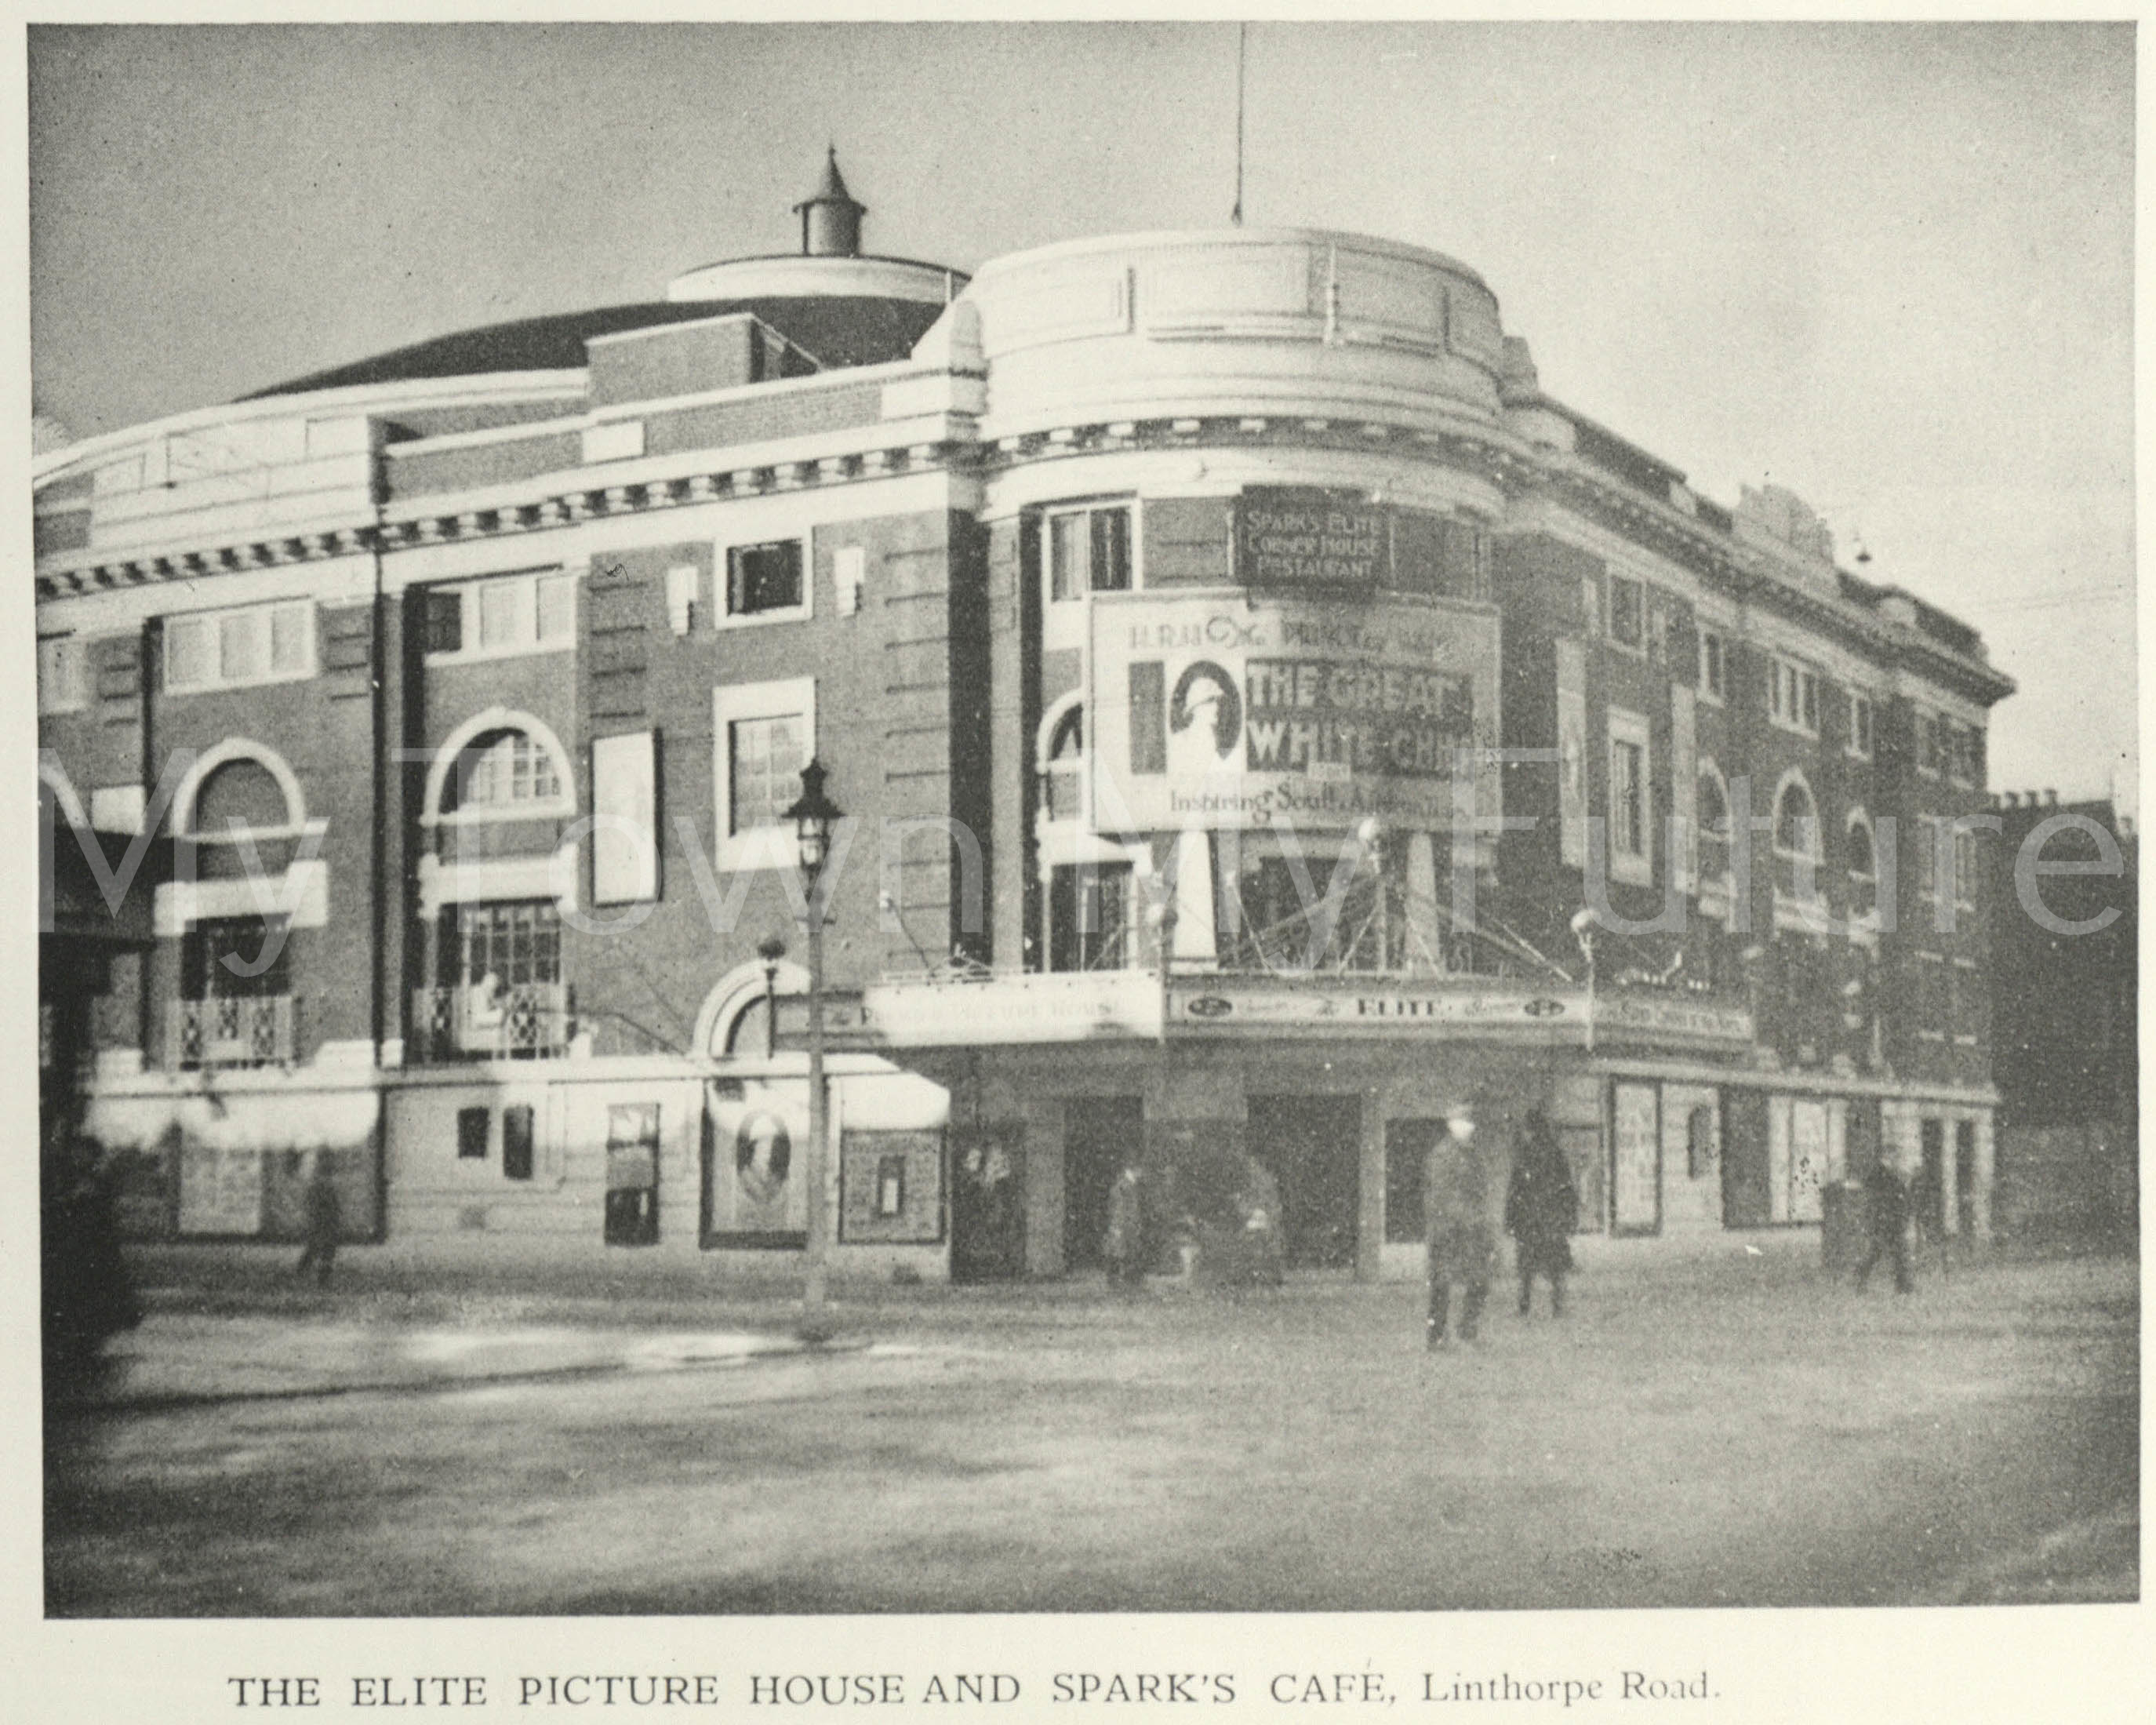 The Elite Picture House 1923